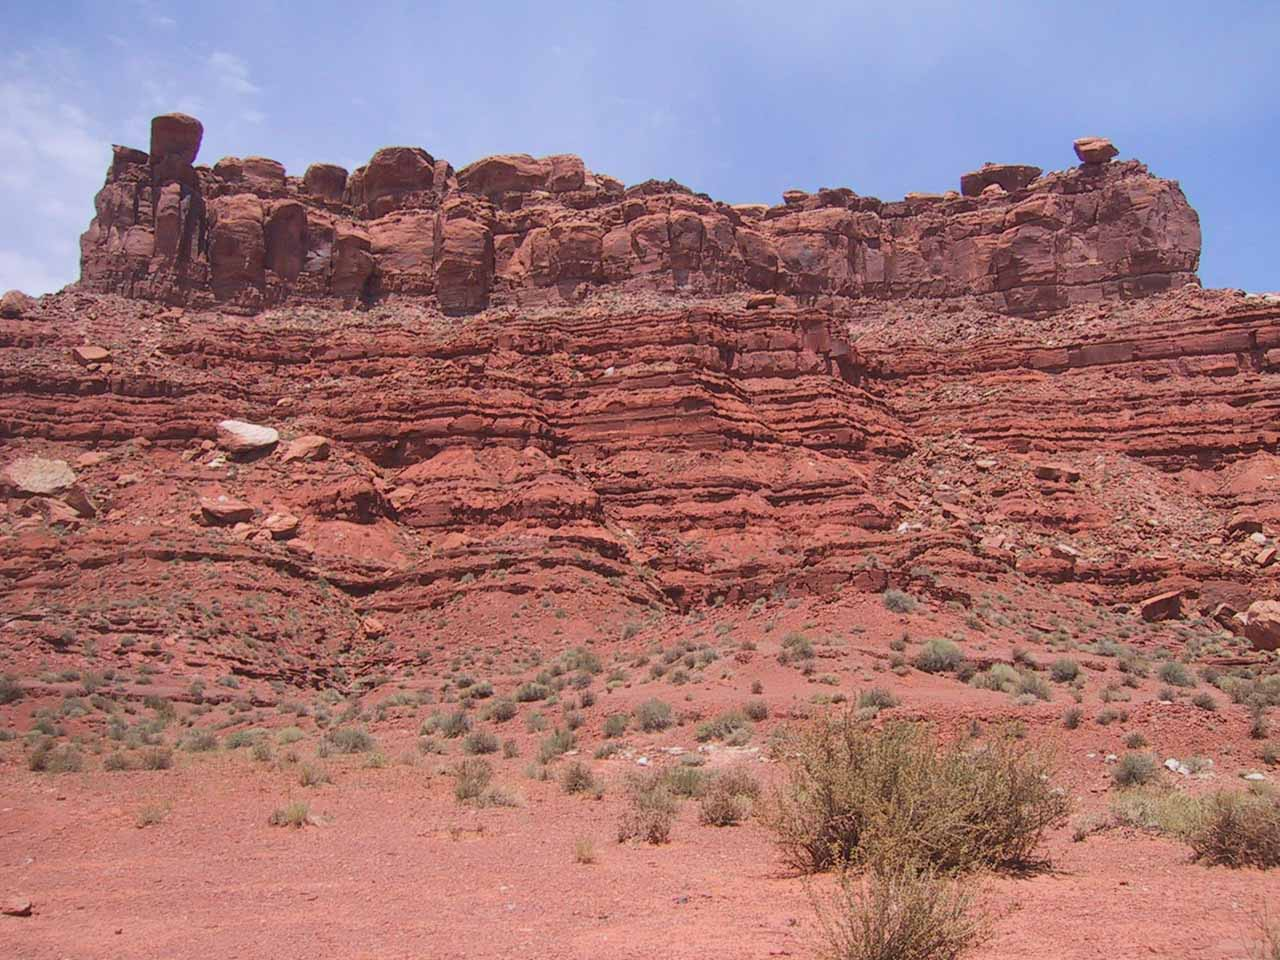 Looking up some imposing cliff walls in Valley of the Gods